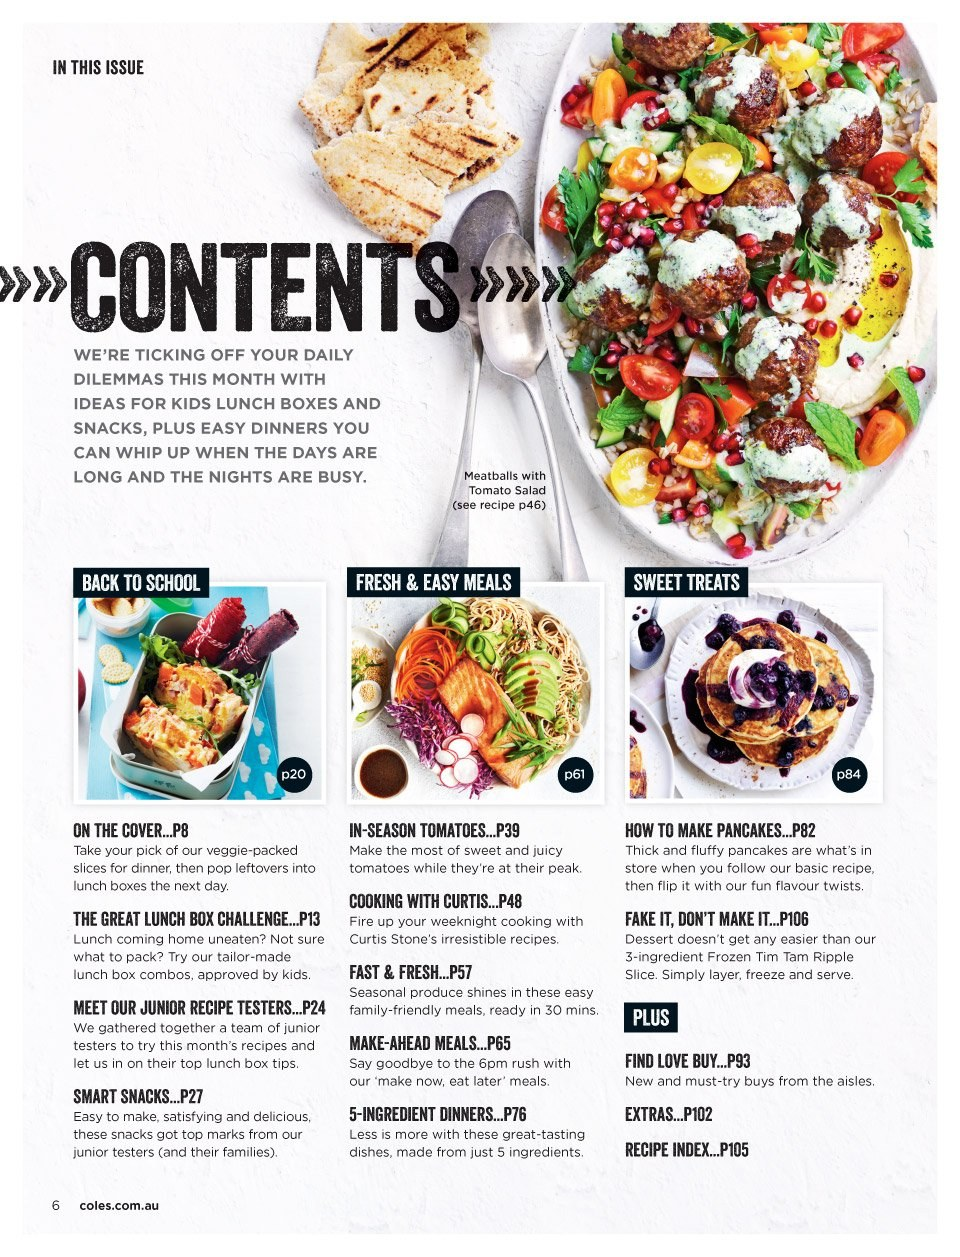 Coles Catalogue - 1.2.2019 - 28.2.2019 - Sales products - box, cover, frozen, tomatoes, top, veggie, pancakes, meatballs, salad, sweet. Page 6.